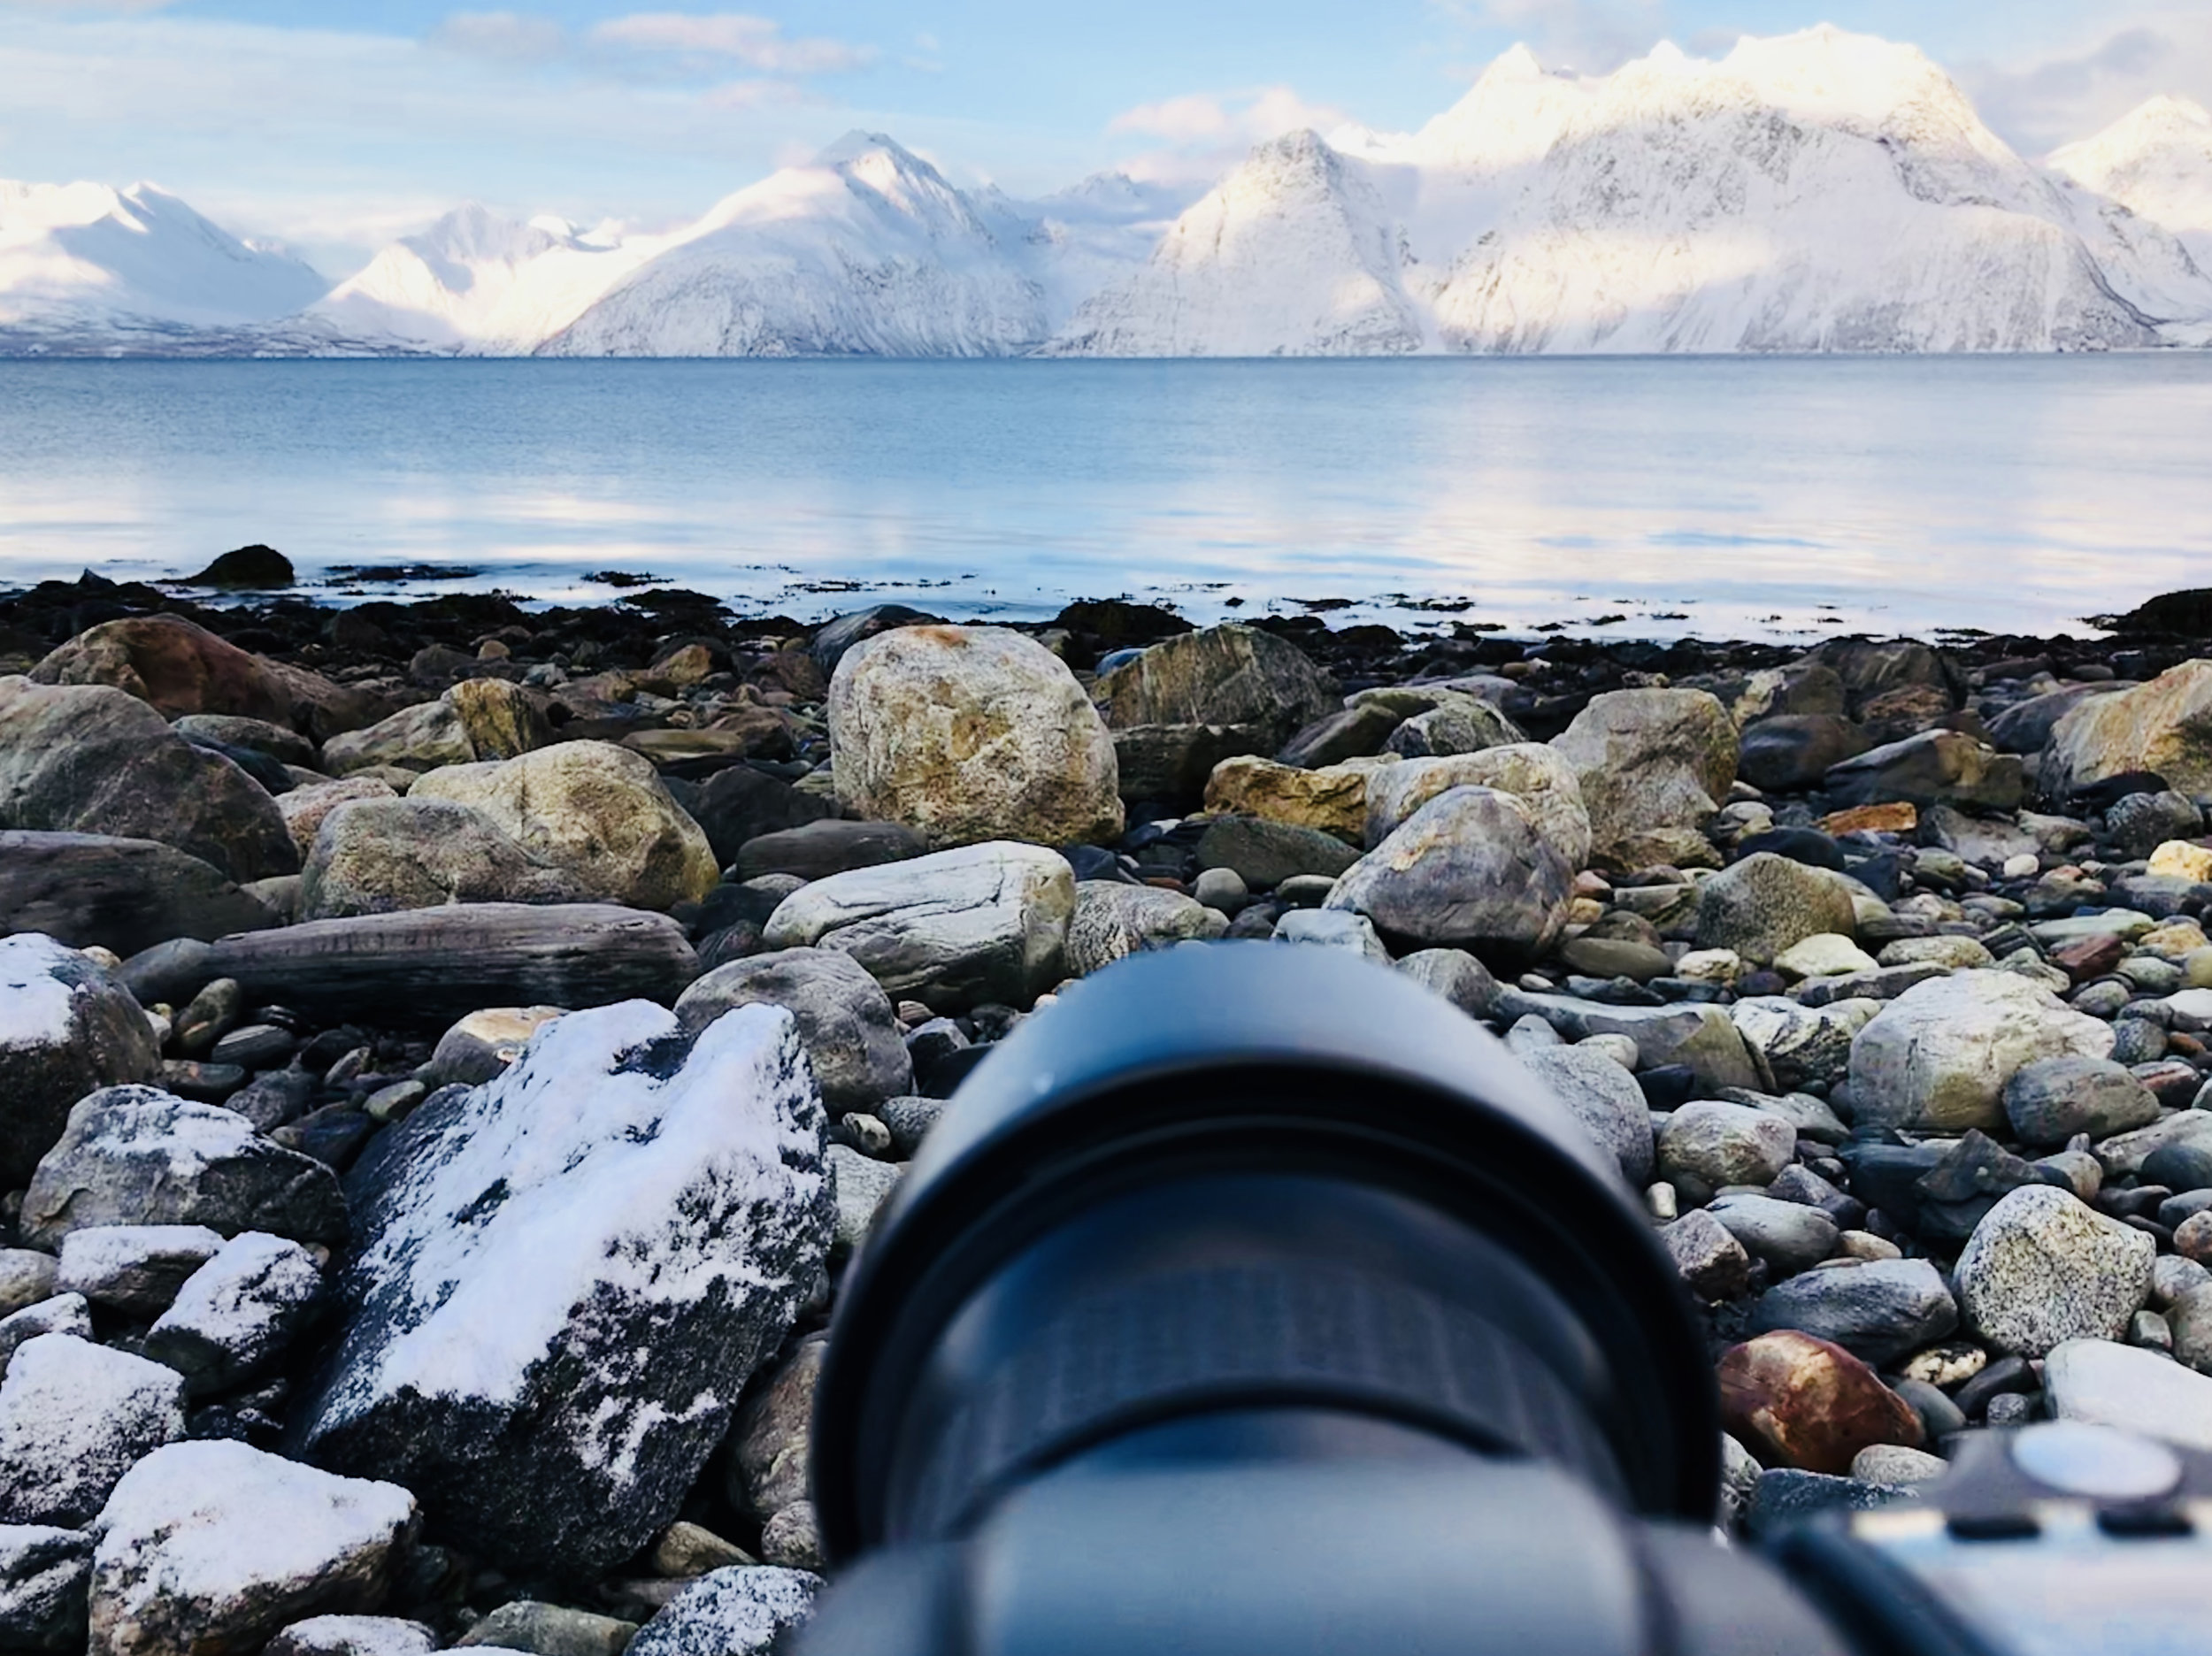 A view from behind the lens